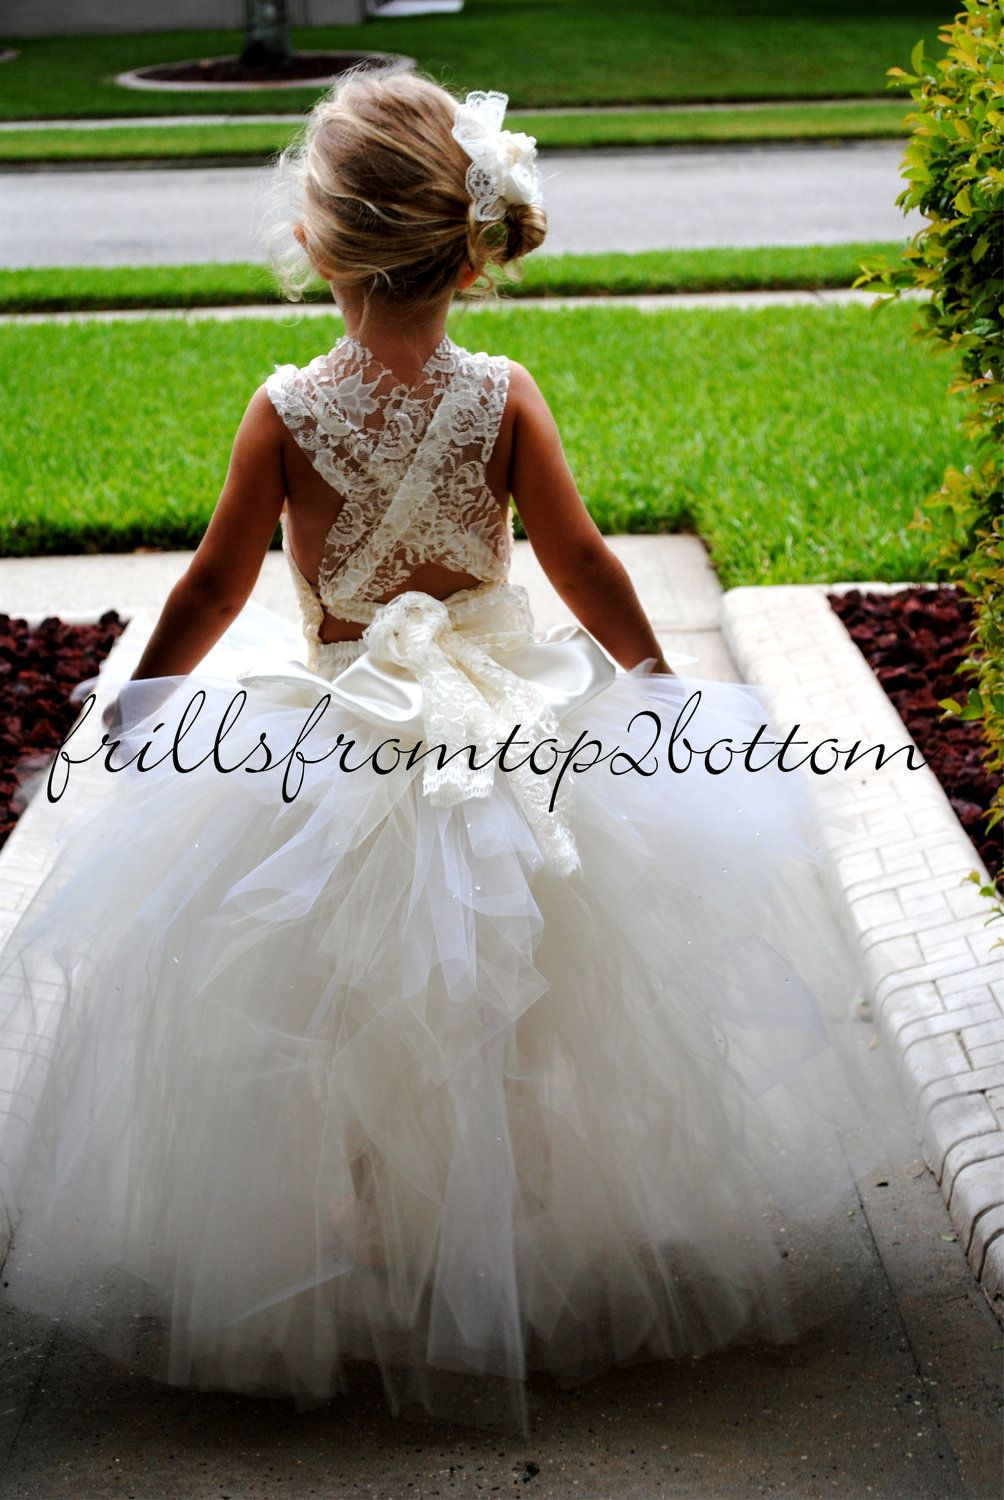 57969de3fbc This would make the most beautiful flower girl dress.